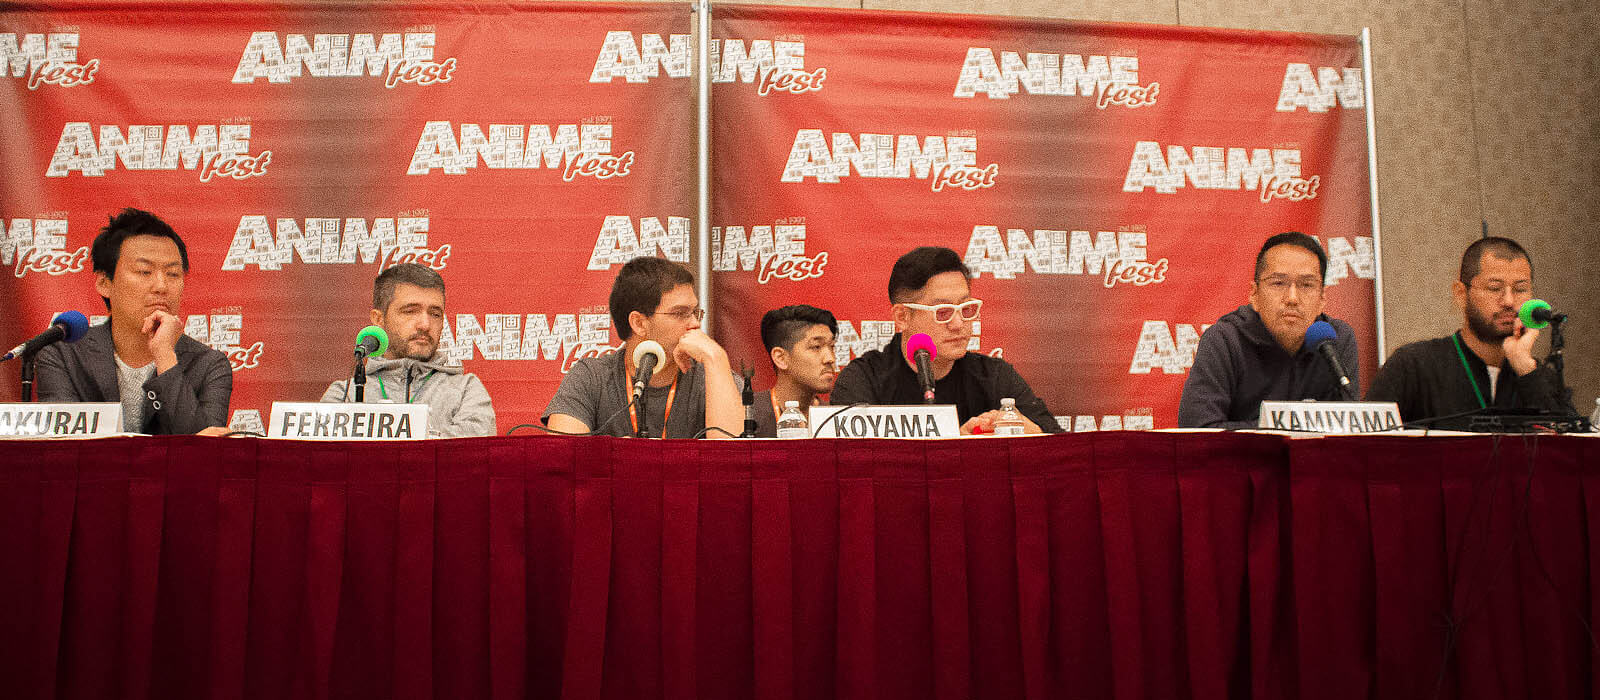 Napping Princess' Staff at AnimeFest 2017 (left to right: Sakurai, Ferreira, Koyama, & Kamiyama)